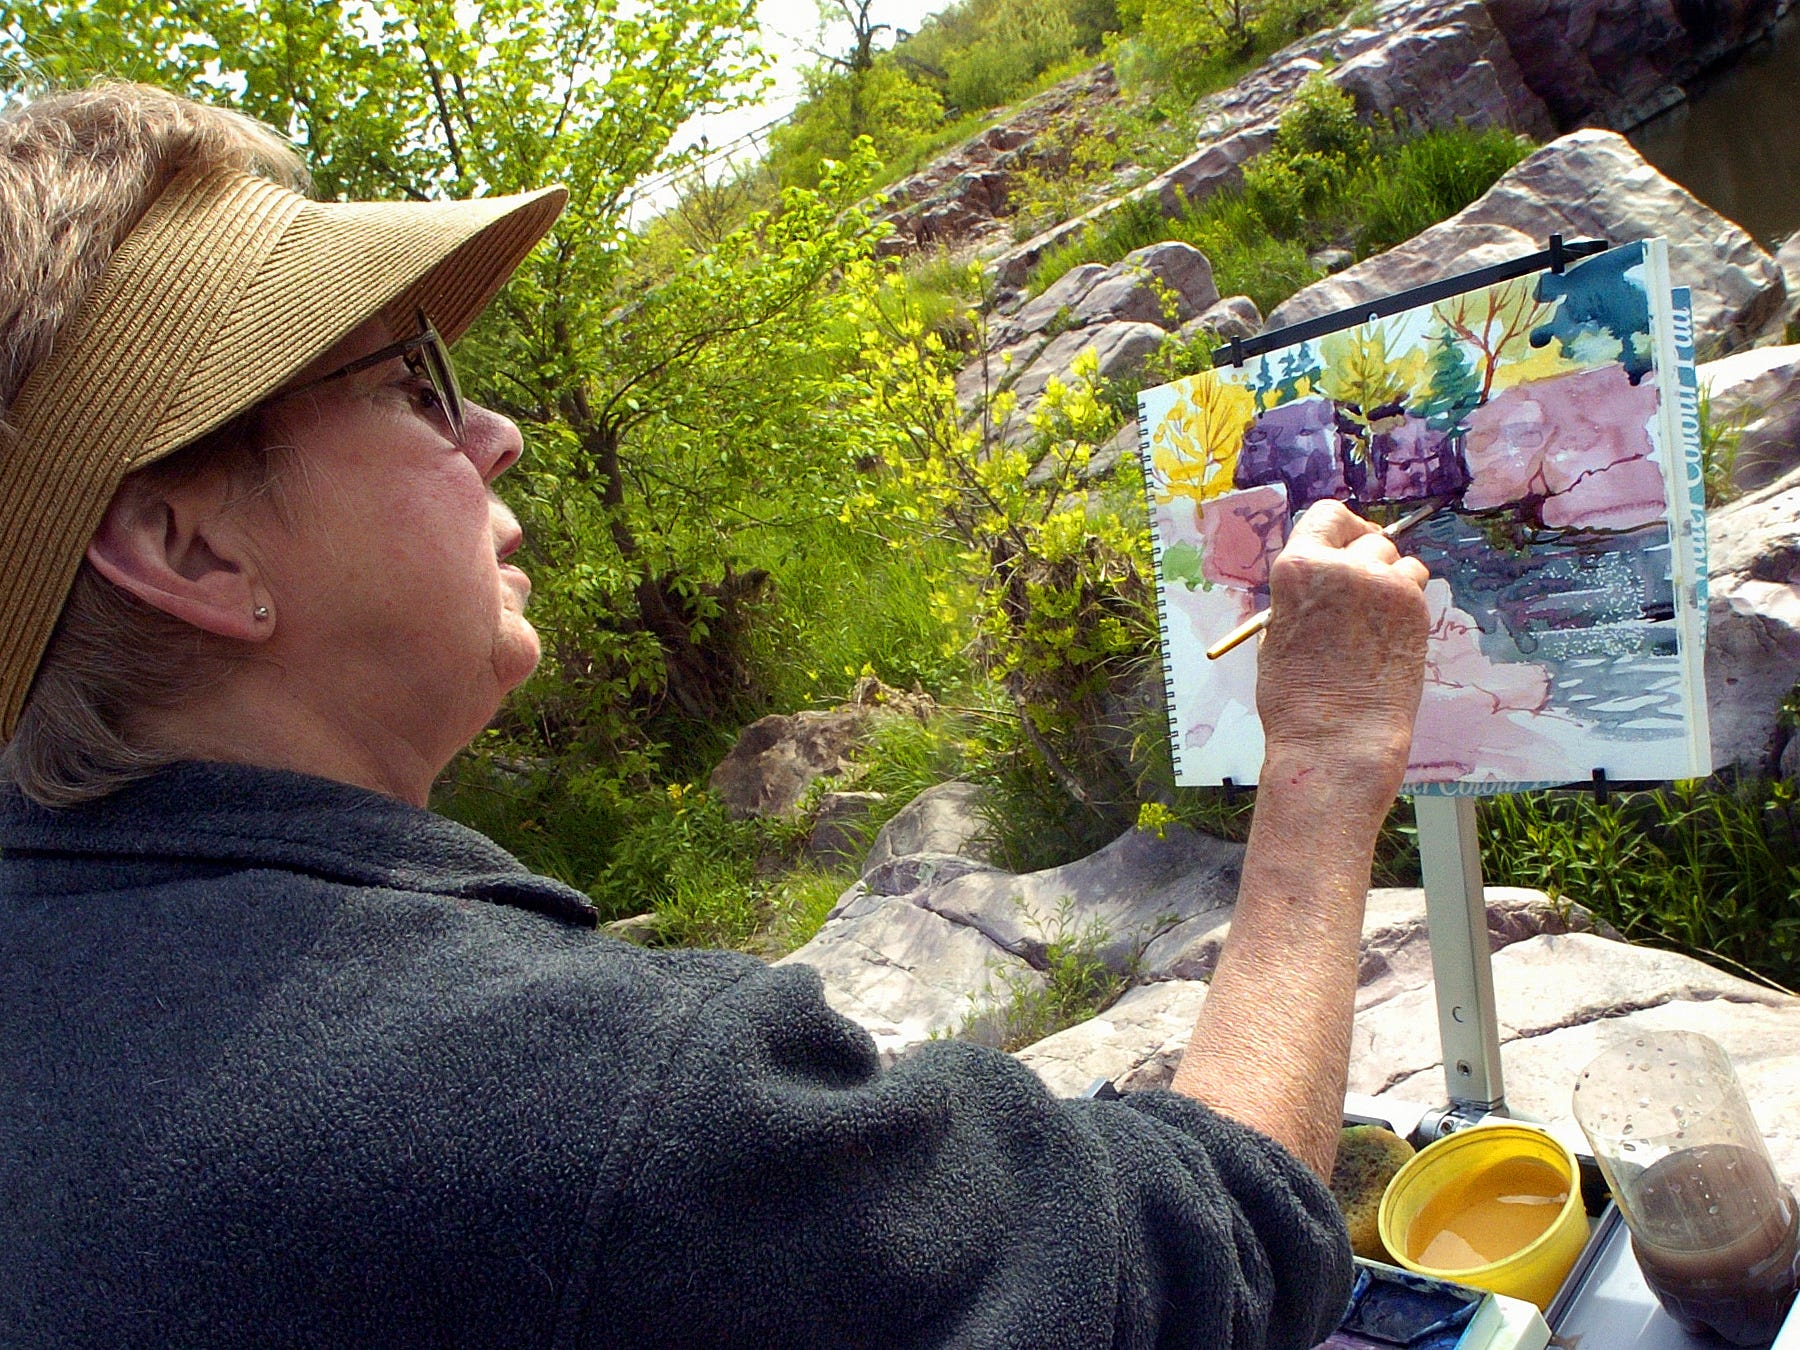 Sioux Falls artist Marian Henjum paints at her portable easel on the rocks at the edge of the Split Rock Creek in Palisades State Park near Garretson Wednesday afternoon May 17, 2006.